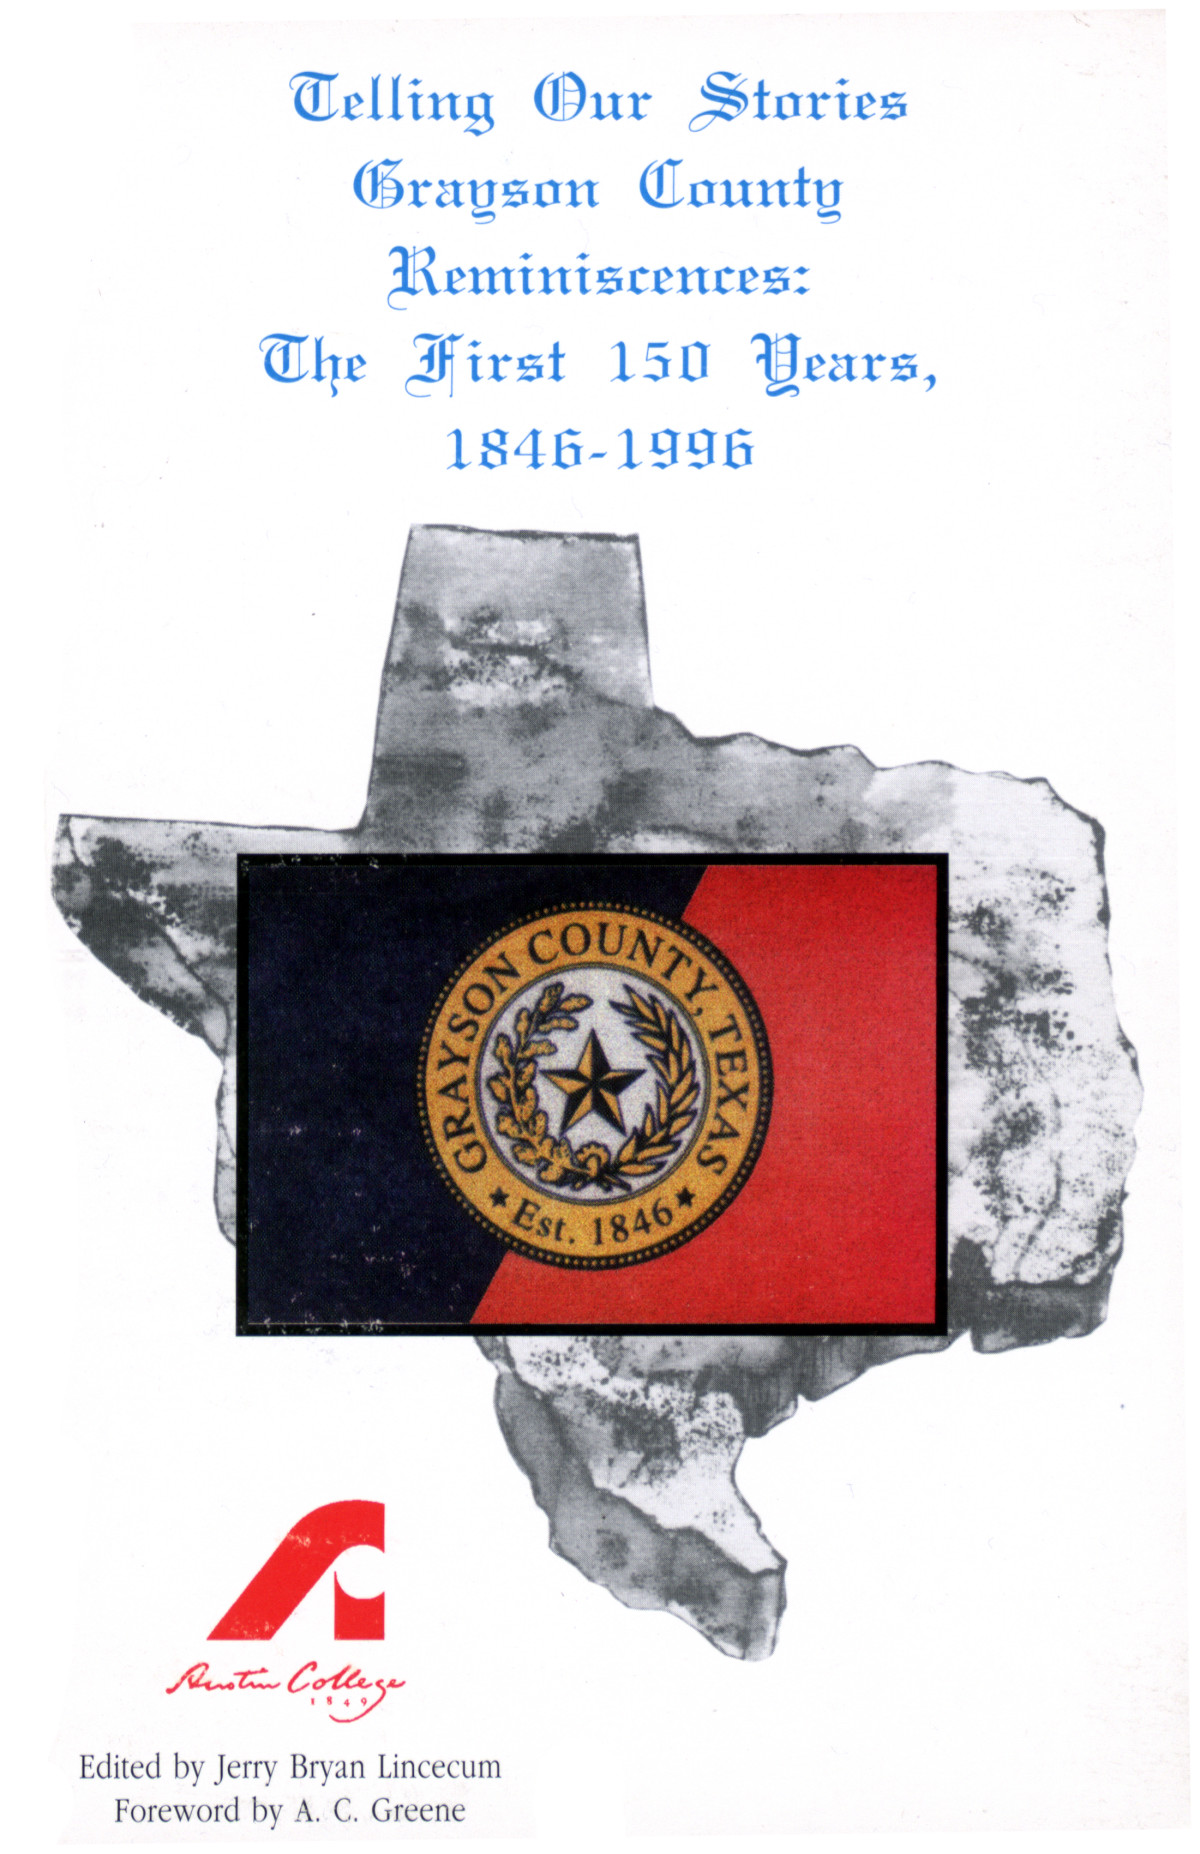 Telling our stories: Grayson County reminiscences: the first 150 years, 1846-1996                                                                                                      [Sequence #]: 1 of 265